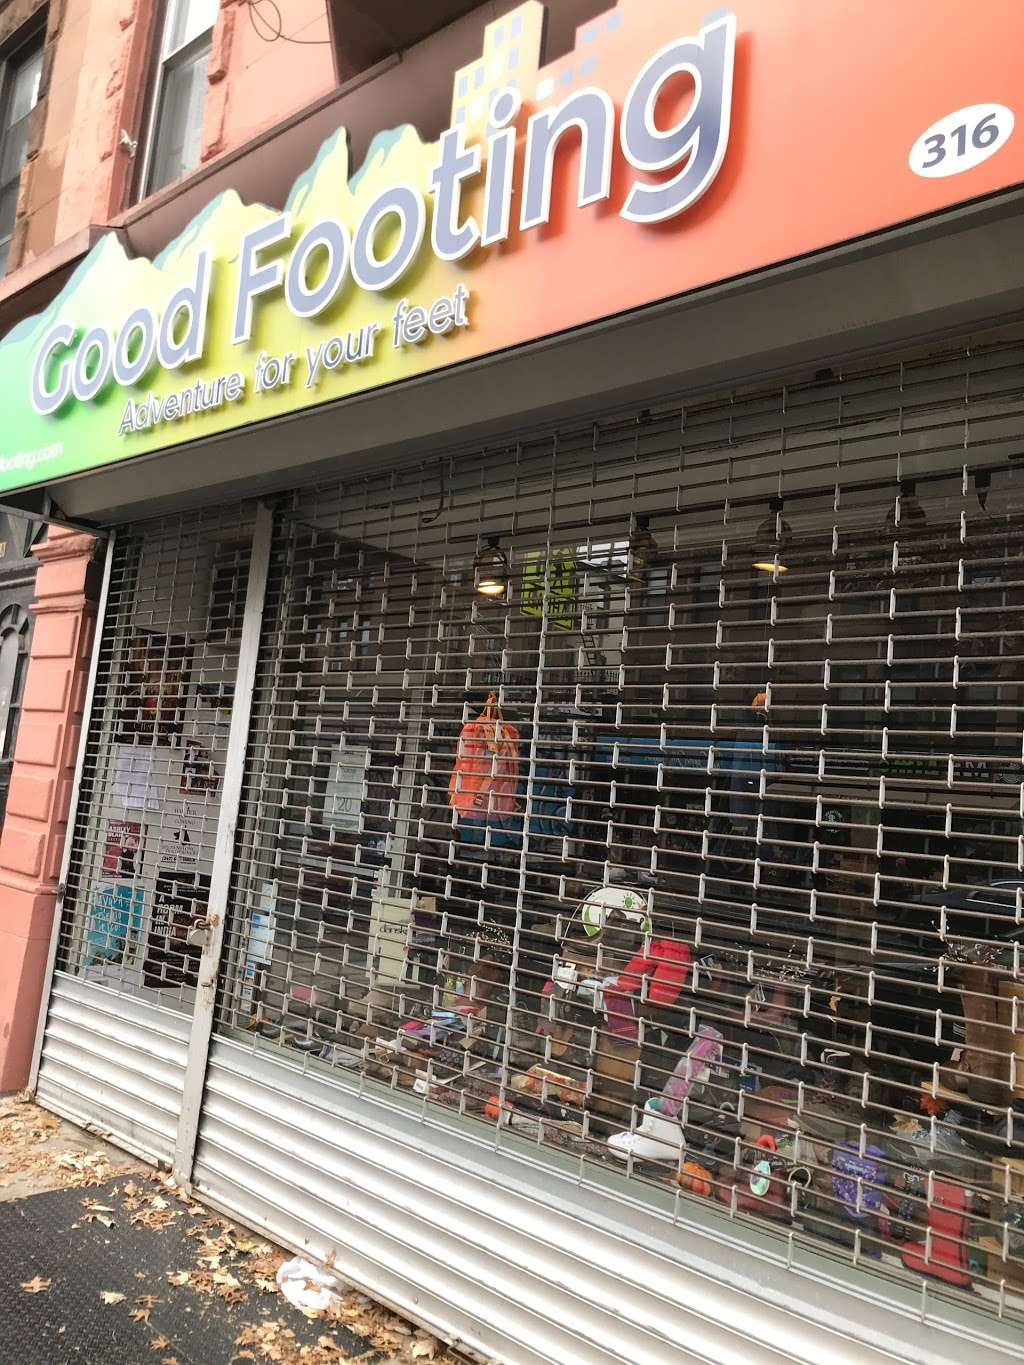 Good Footing - shoe store  | Photo 1 of 8 | Address: 316 7th Ave, Brooklyn, NY 11215, USA | Phone: (718) 768-9500